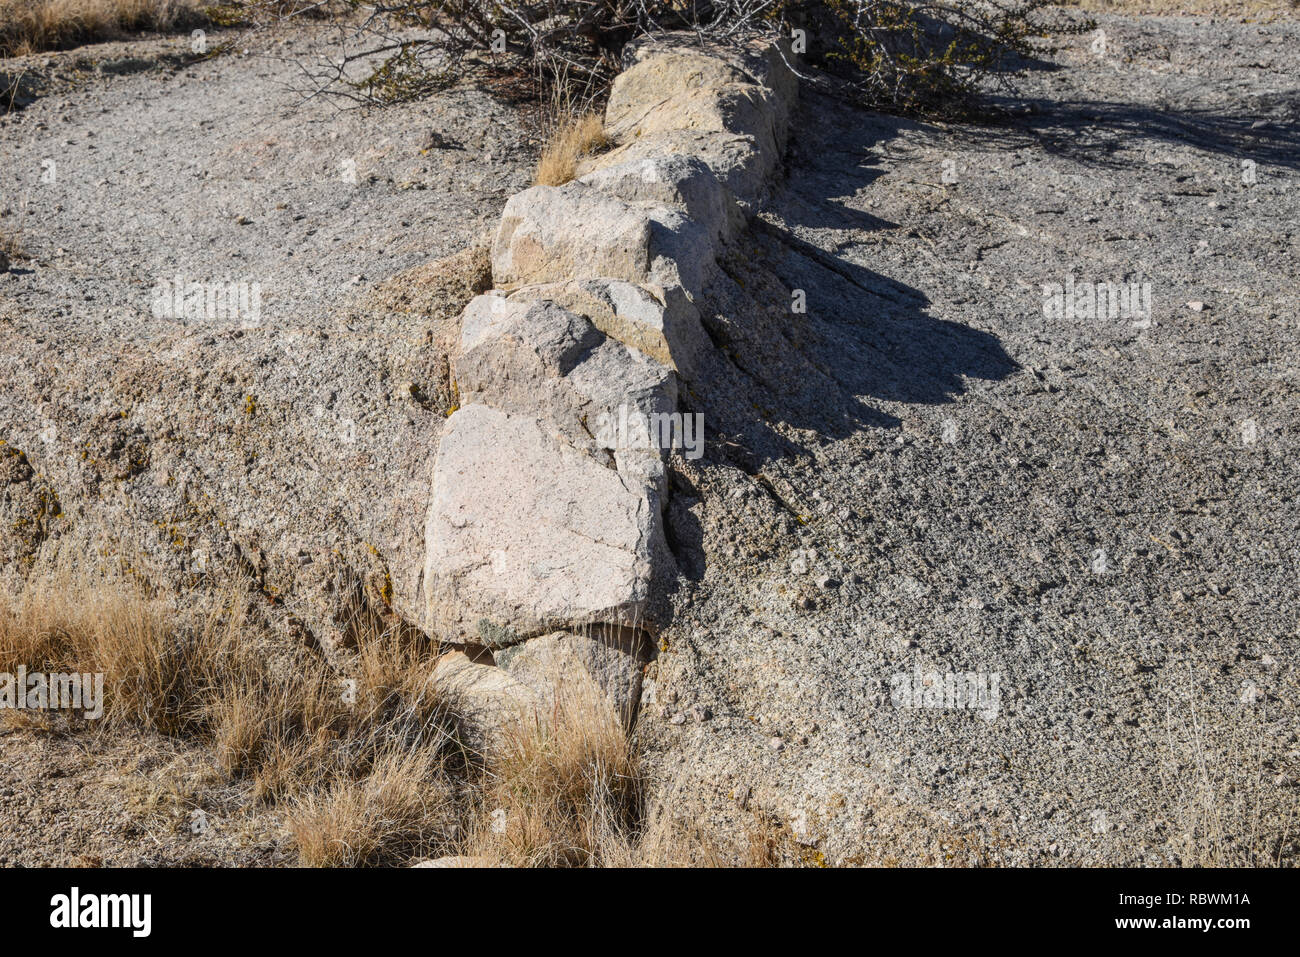 Geology formation of a dike of different rock inside a larger slab of rock - Stock Image